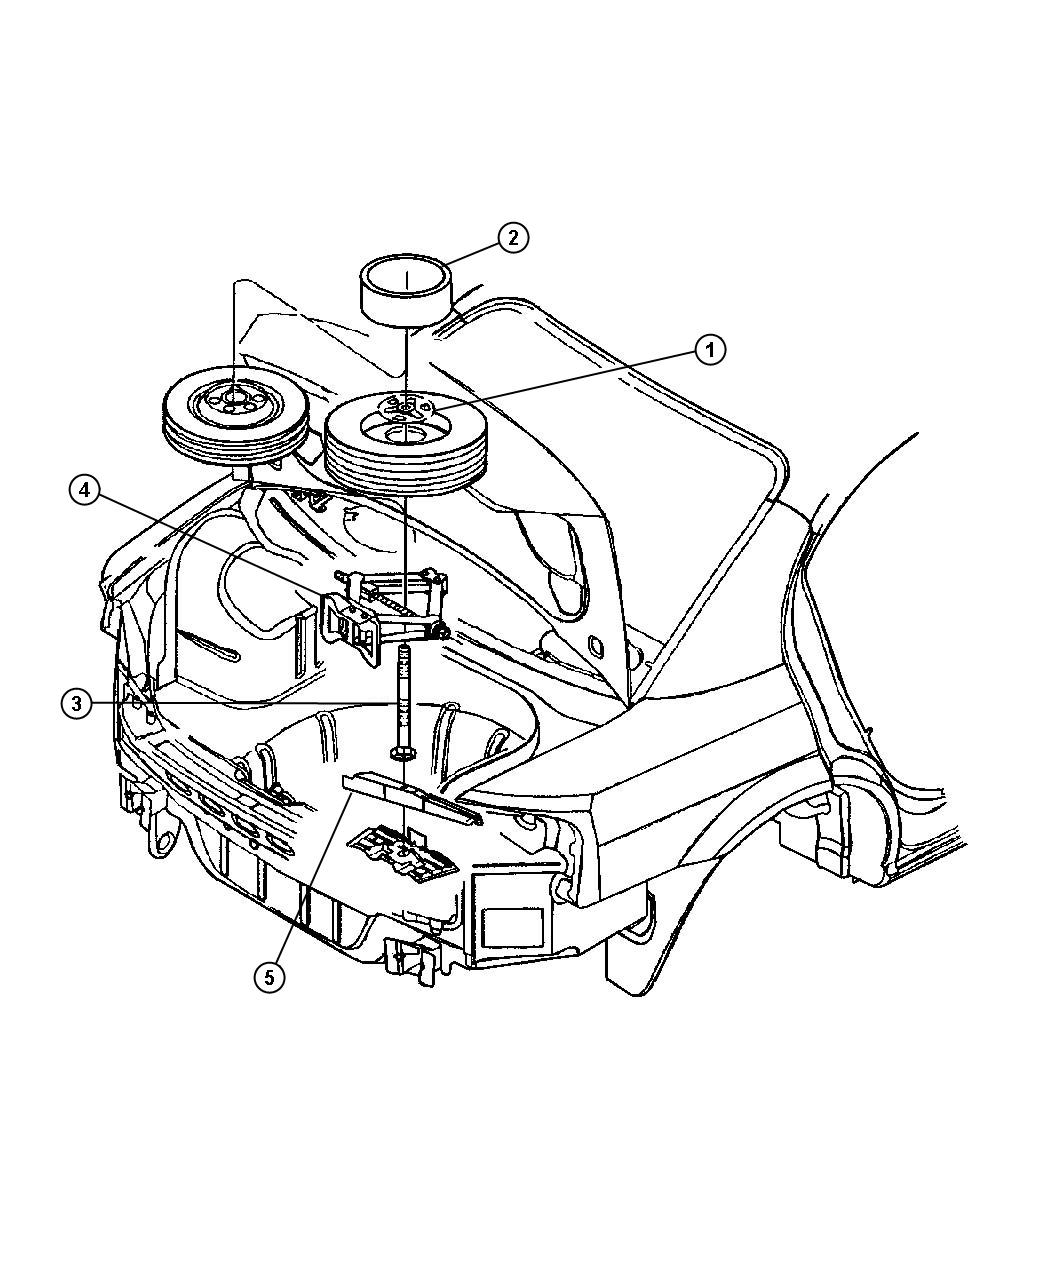 Battery Scat besides Mopar Cable Antenna 5064617ab in addition Chrysler 300 A C  pressor Location additionally Chrysler Sebring Stratus Sedan Convertible together with Chrysler Pump Engine Oil 4781454ab. on chrysler sebring convertible accessories